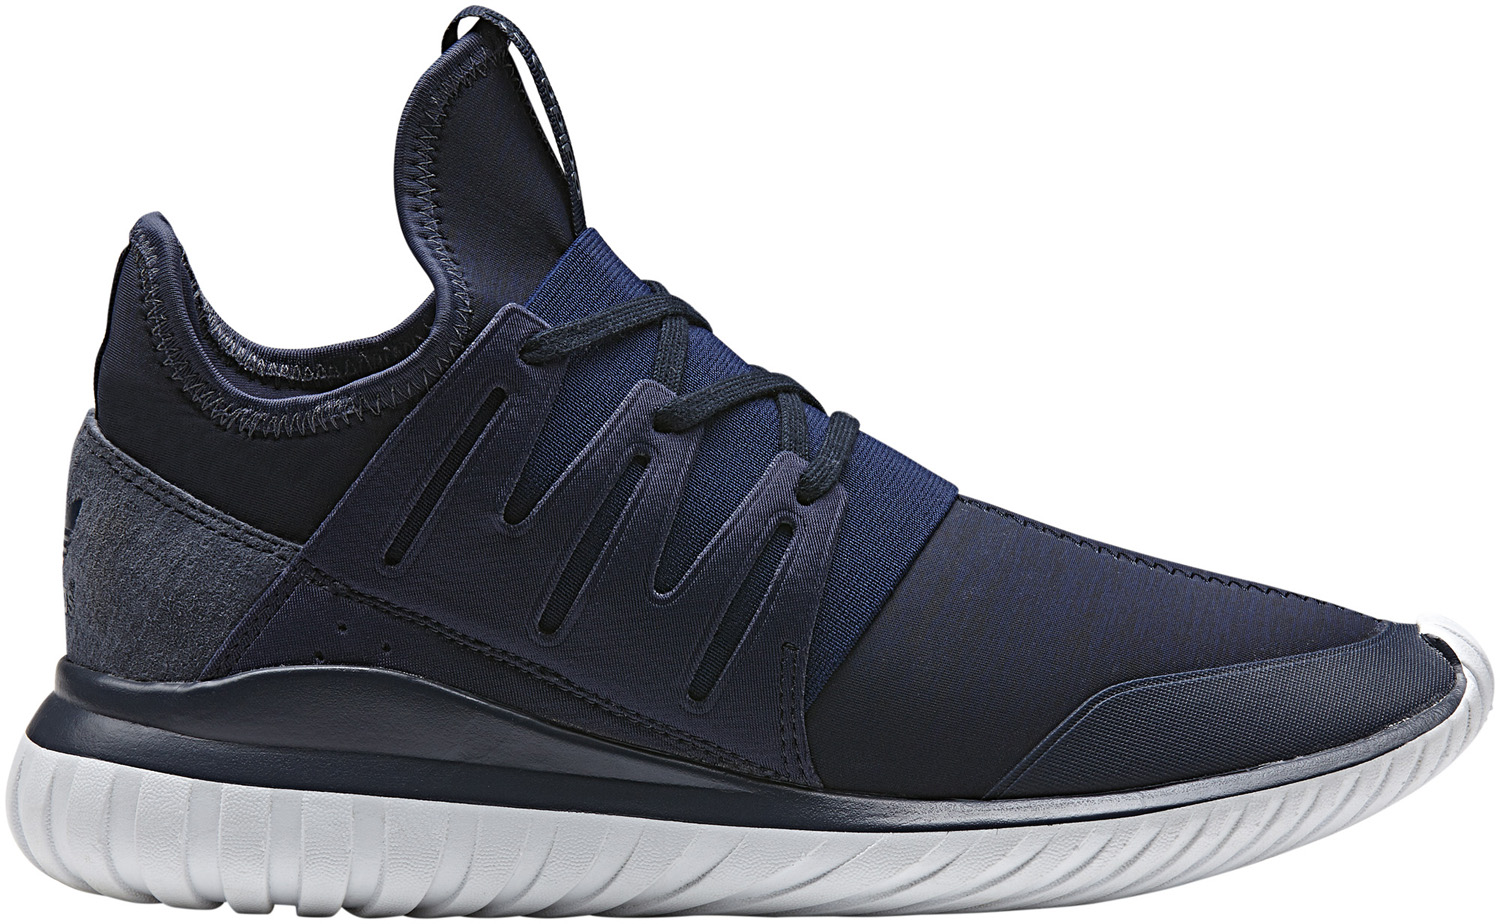 Adidas Black Tubular Primeknit Shoes adidas GR